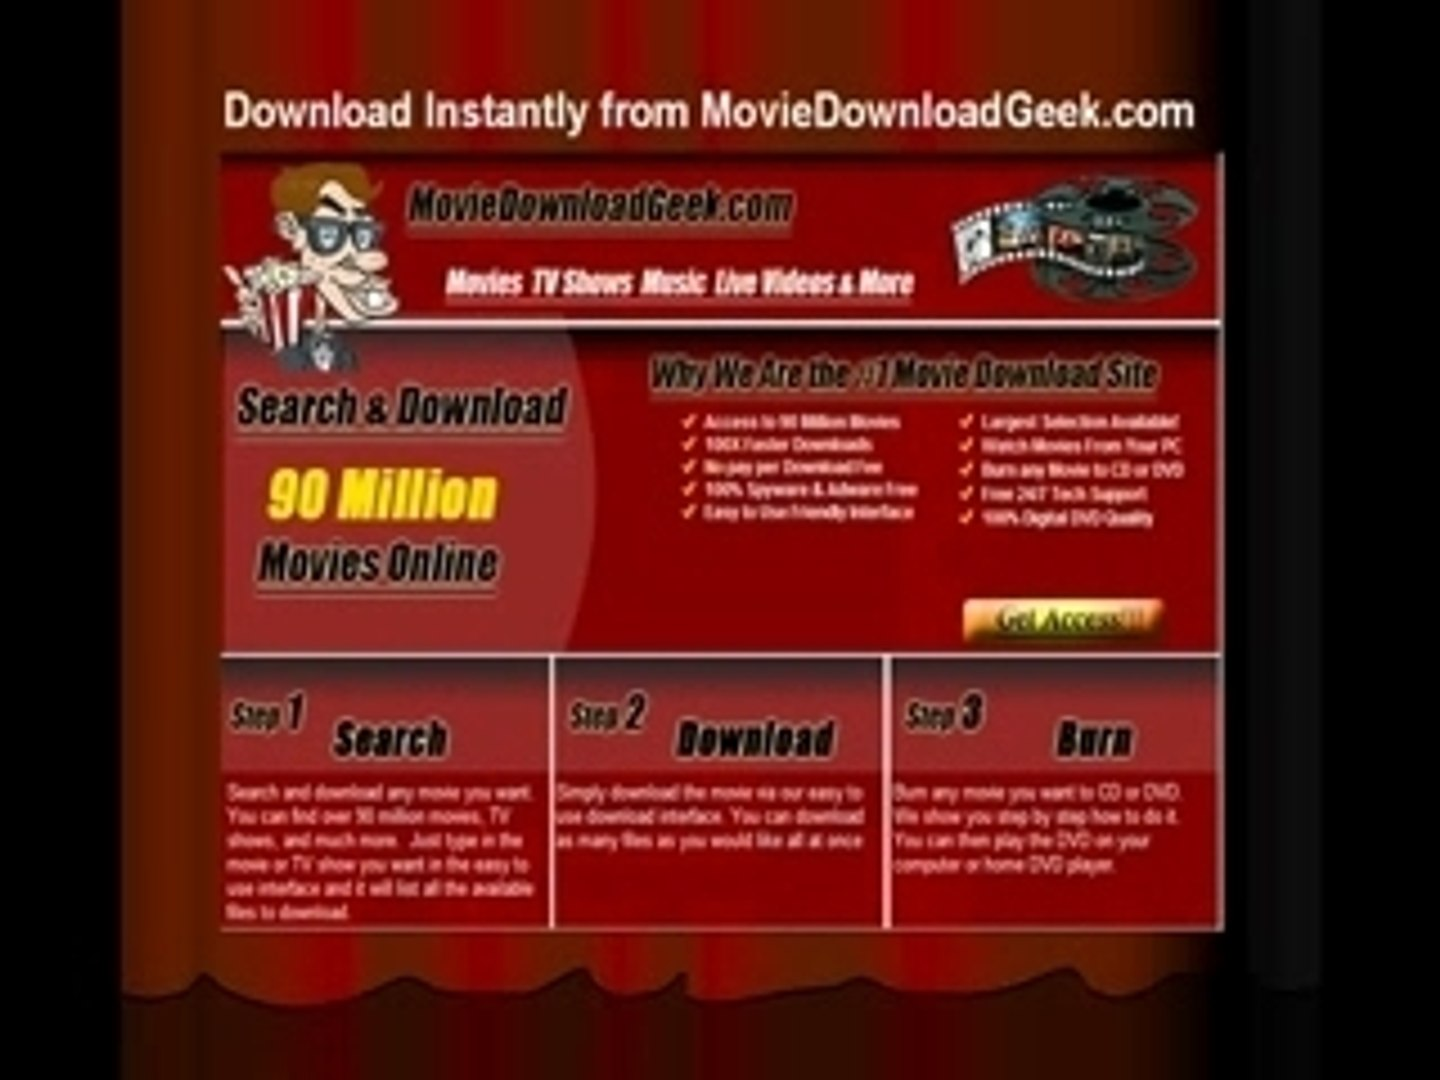 Download Movies Online & Burn Movies to DVD